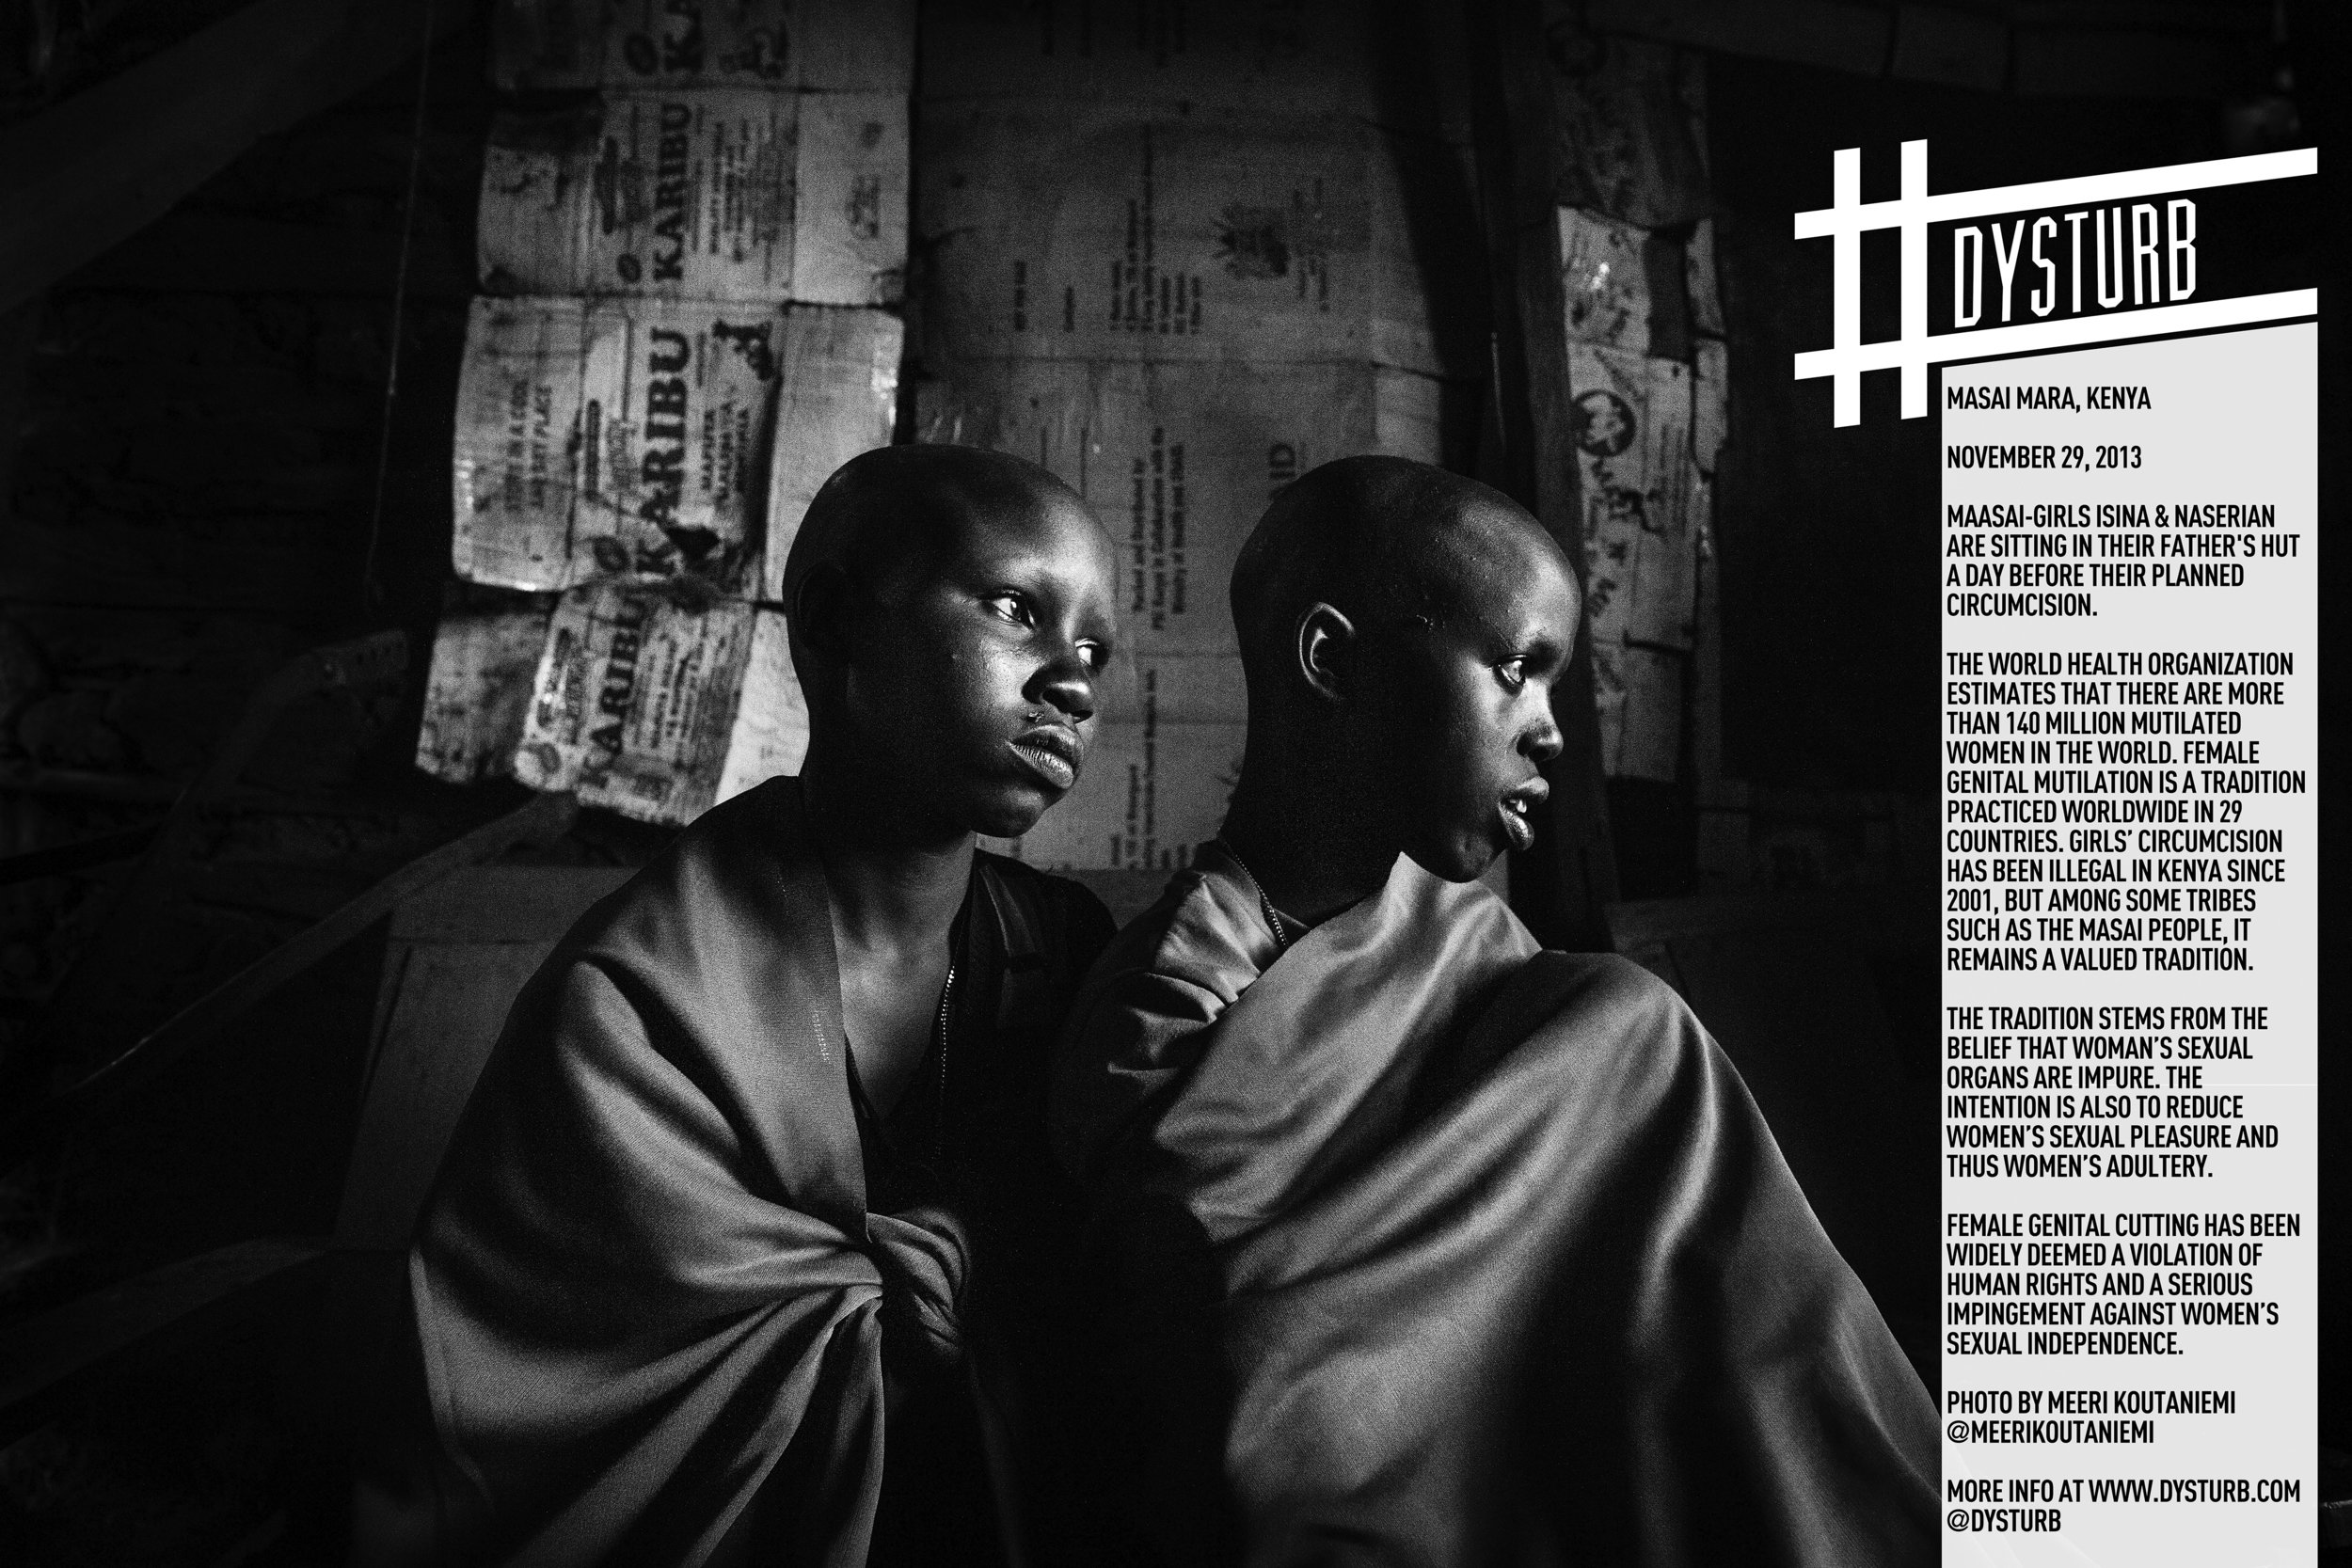 Maasai-girls Isina & Naserian are sitting in their father's hut a day before their planned circumcision. Photo by Meeri Koutaniemi